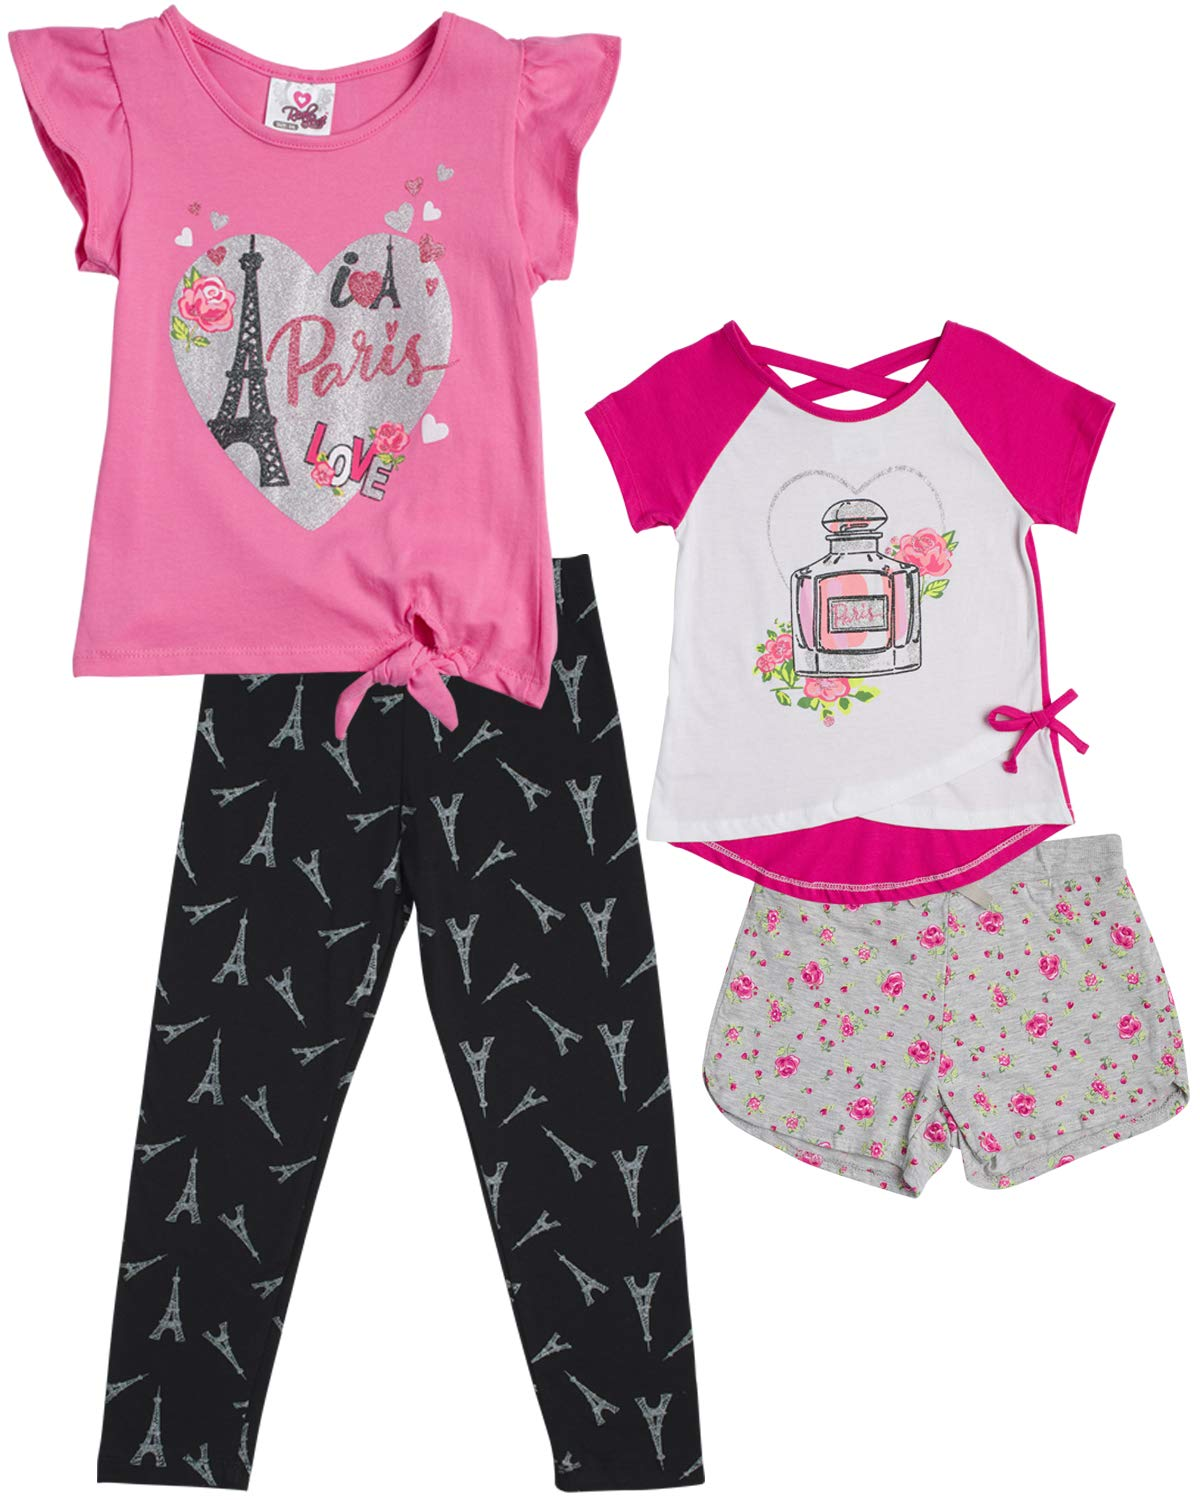 Real Love Girls 4-Piece Summer Legging and Short Set (2 Full Sets), Love Paris, Size 6X'